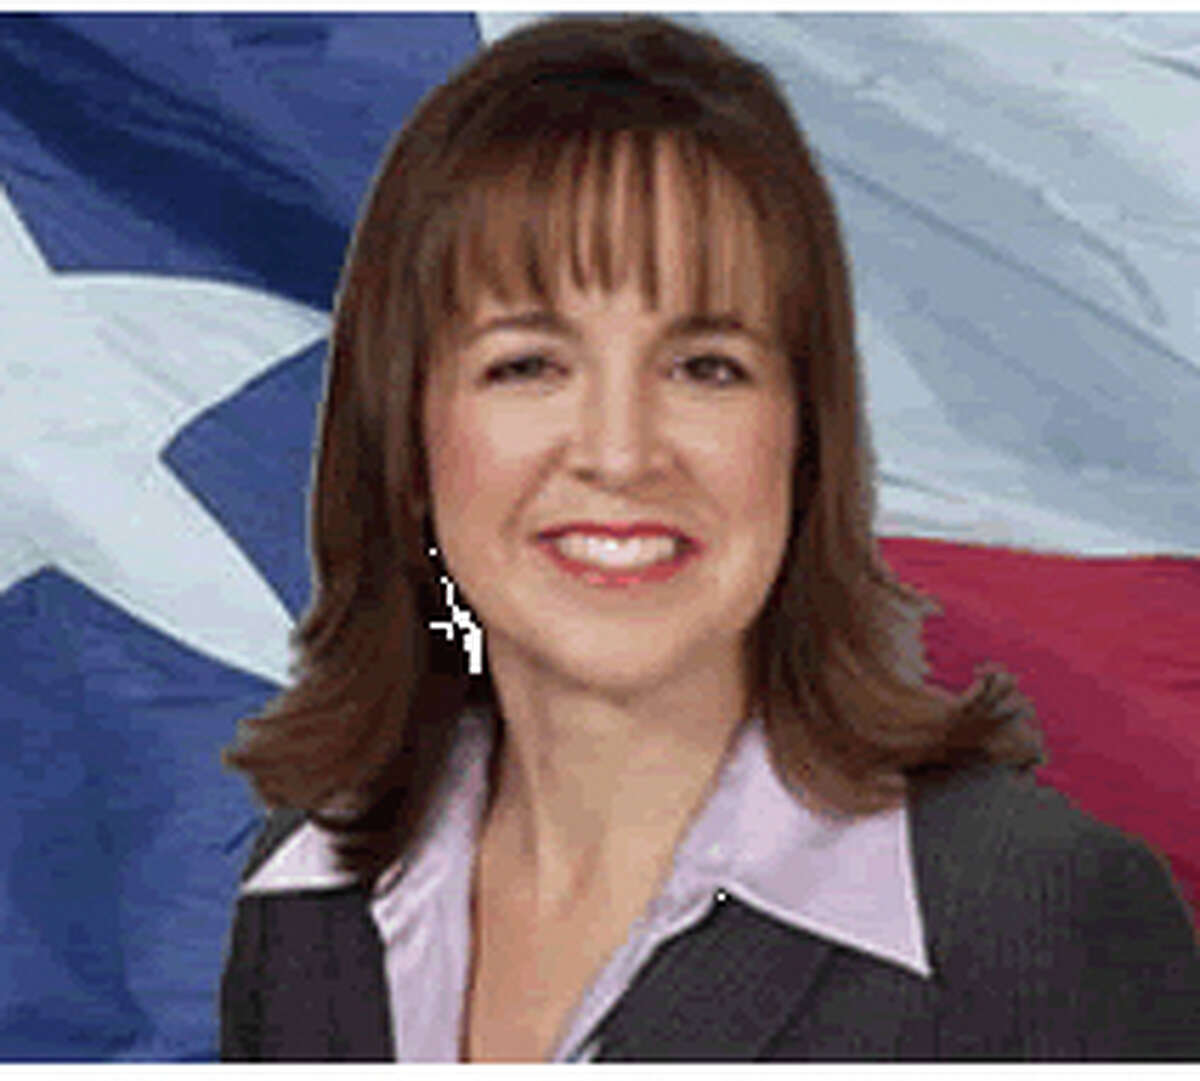 Kristi Thibaut served in the state House of Representatives.